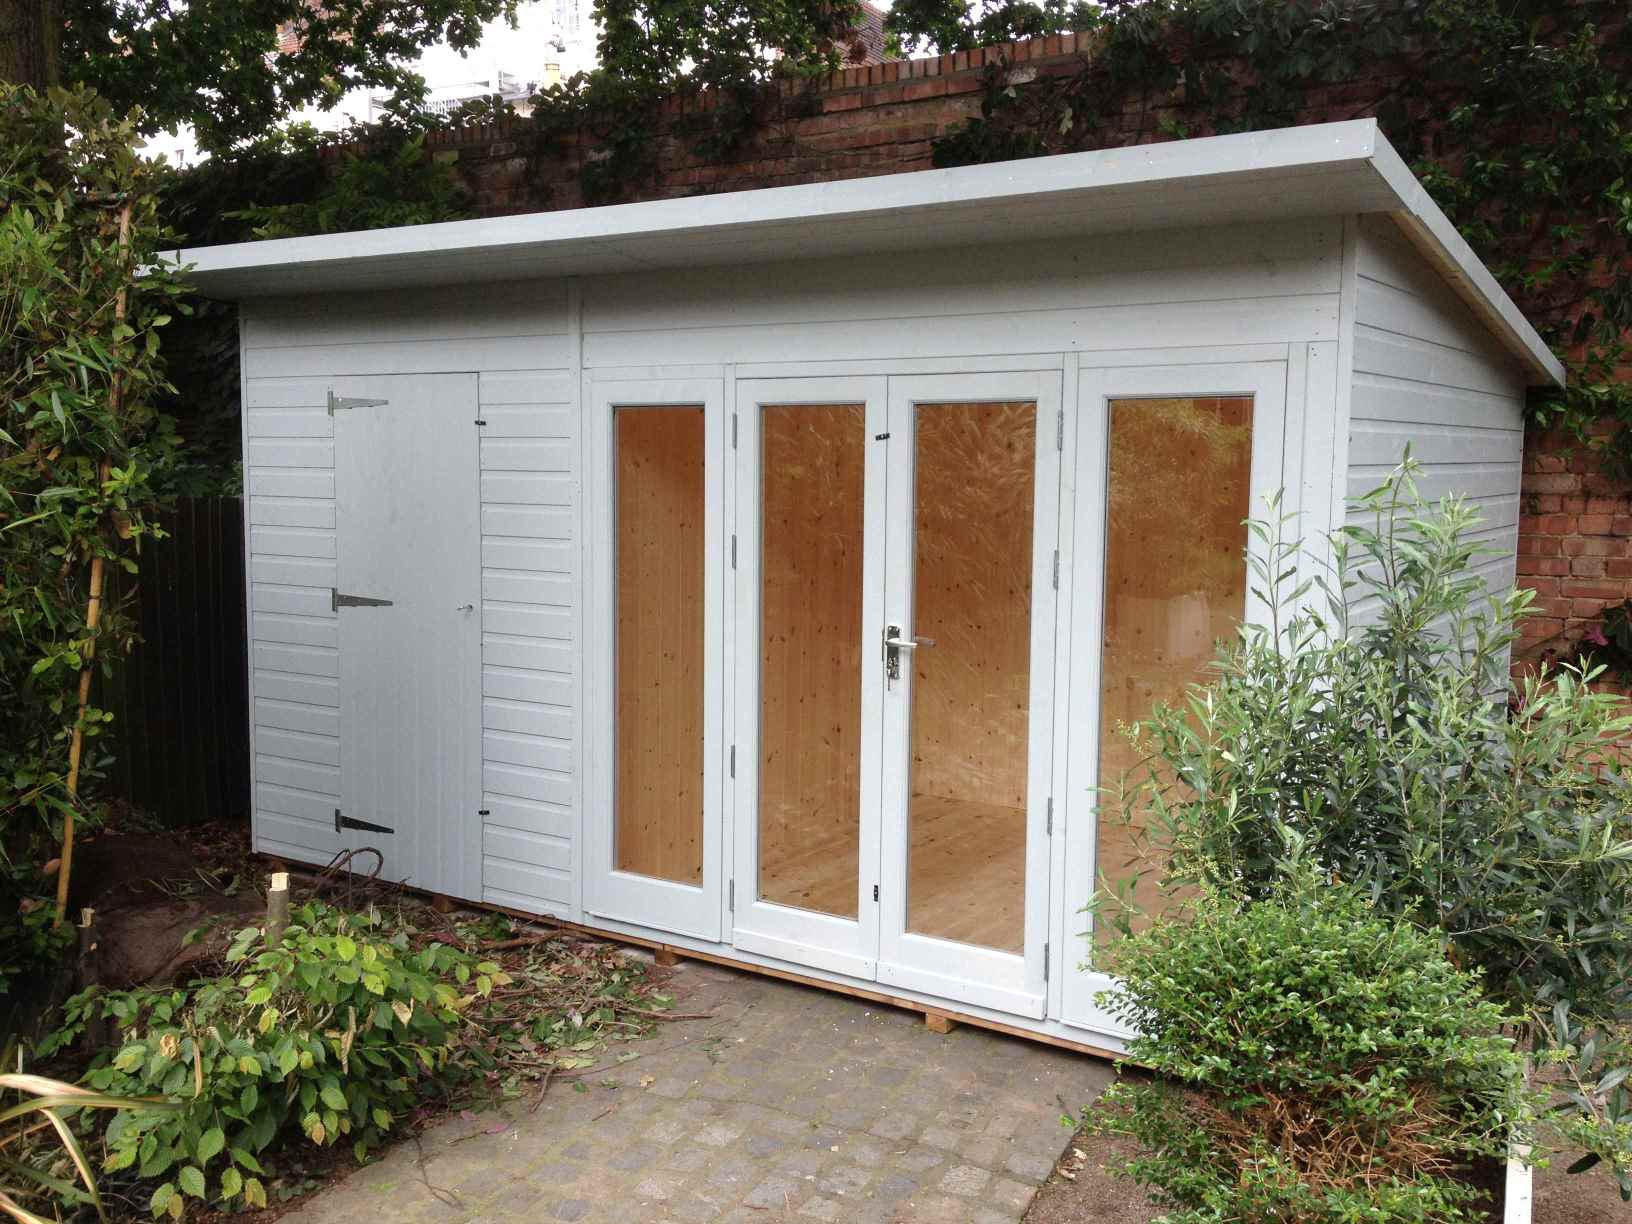 Combination buildings mb garden building for Small outdoor sheds for sale